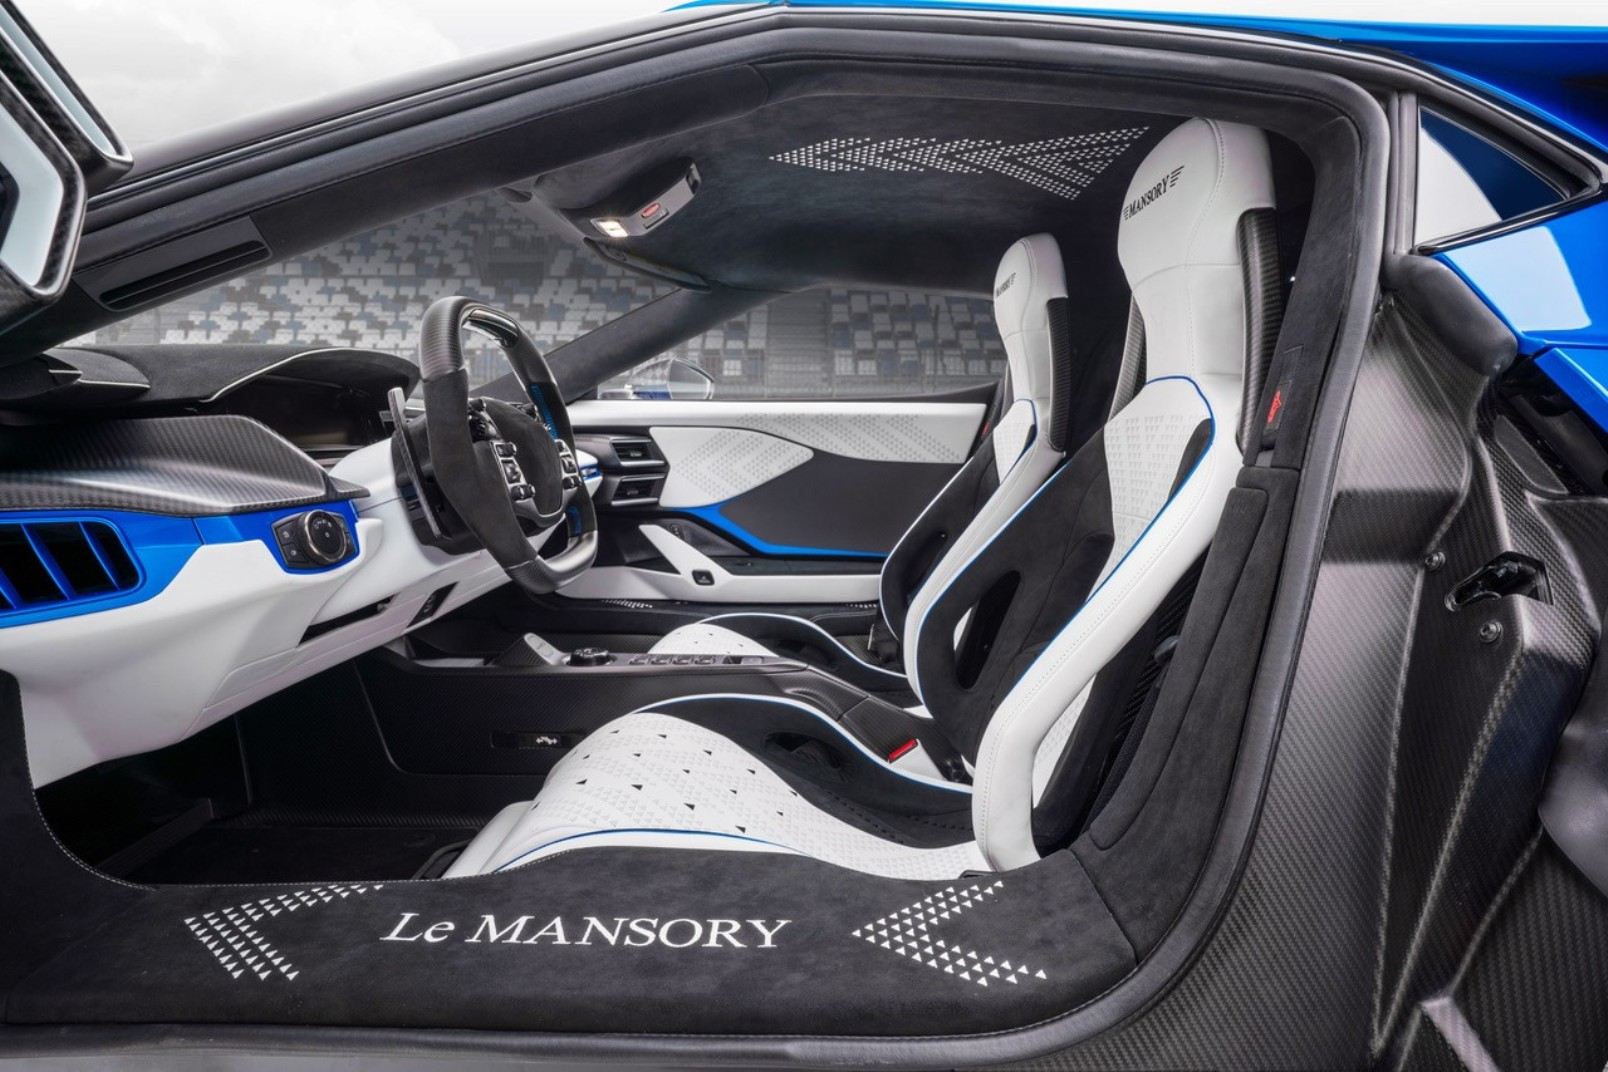 Ford Gt Le Mansory (7)